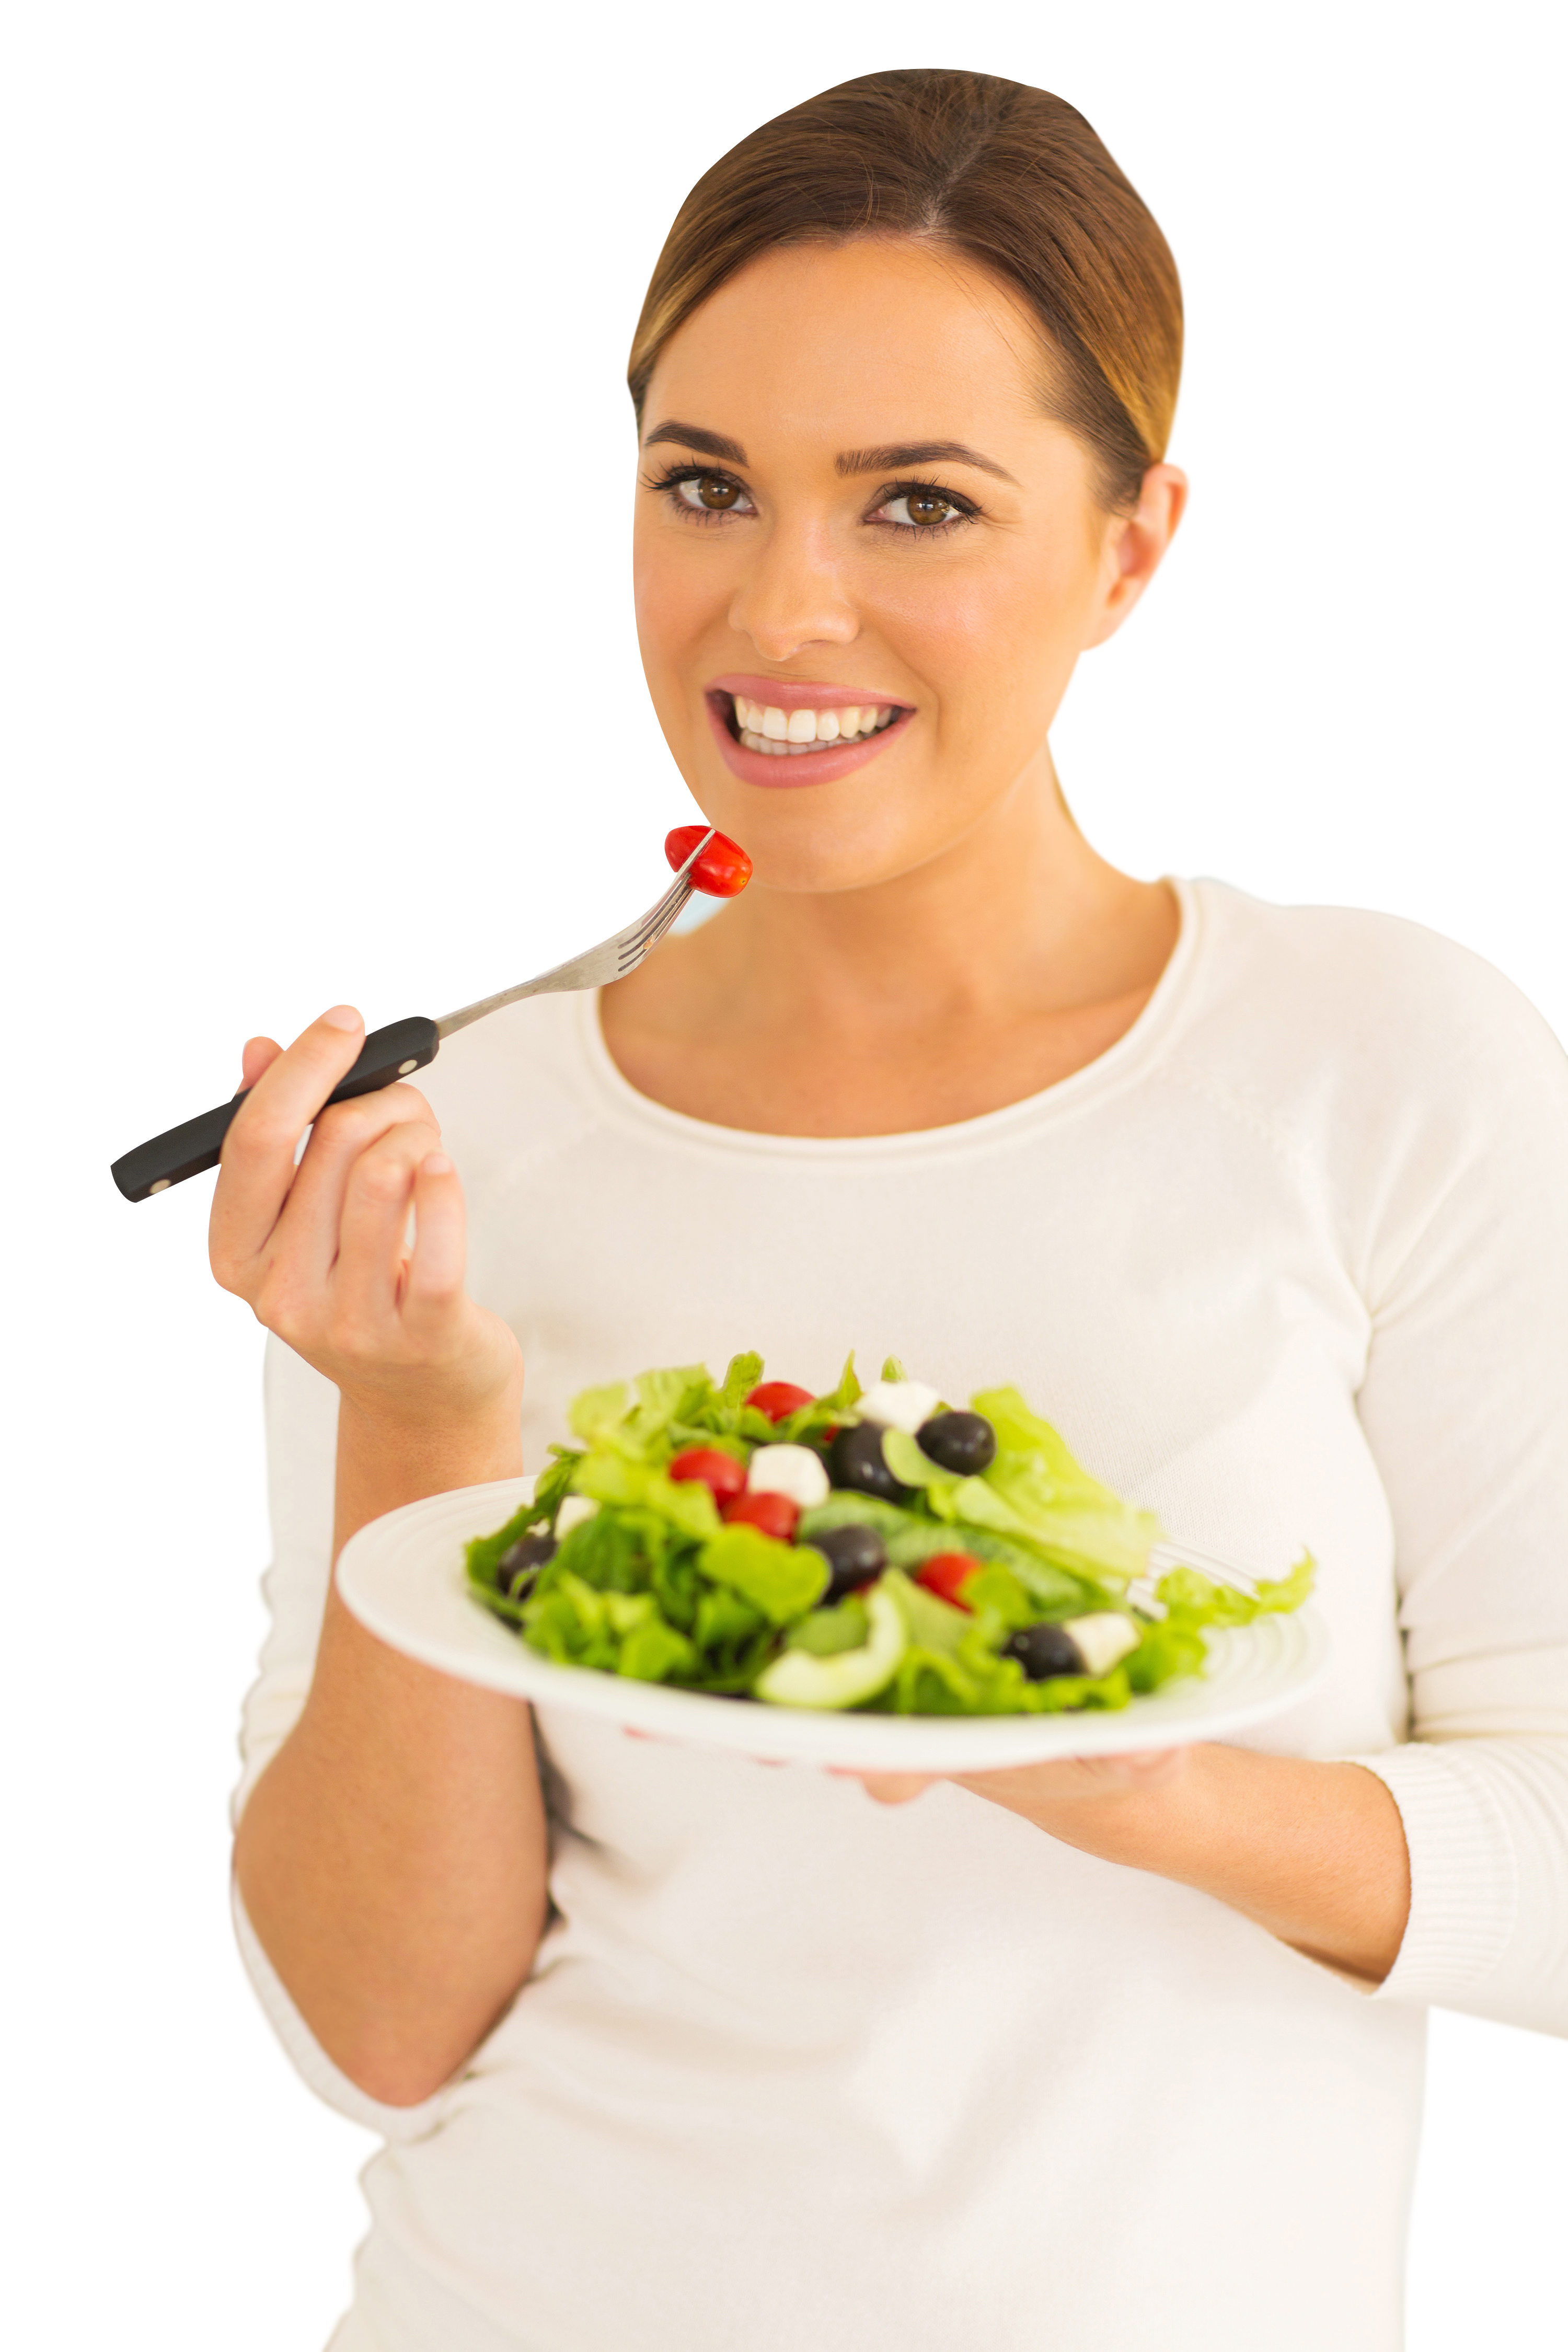 Happy employee eating a fresh salad